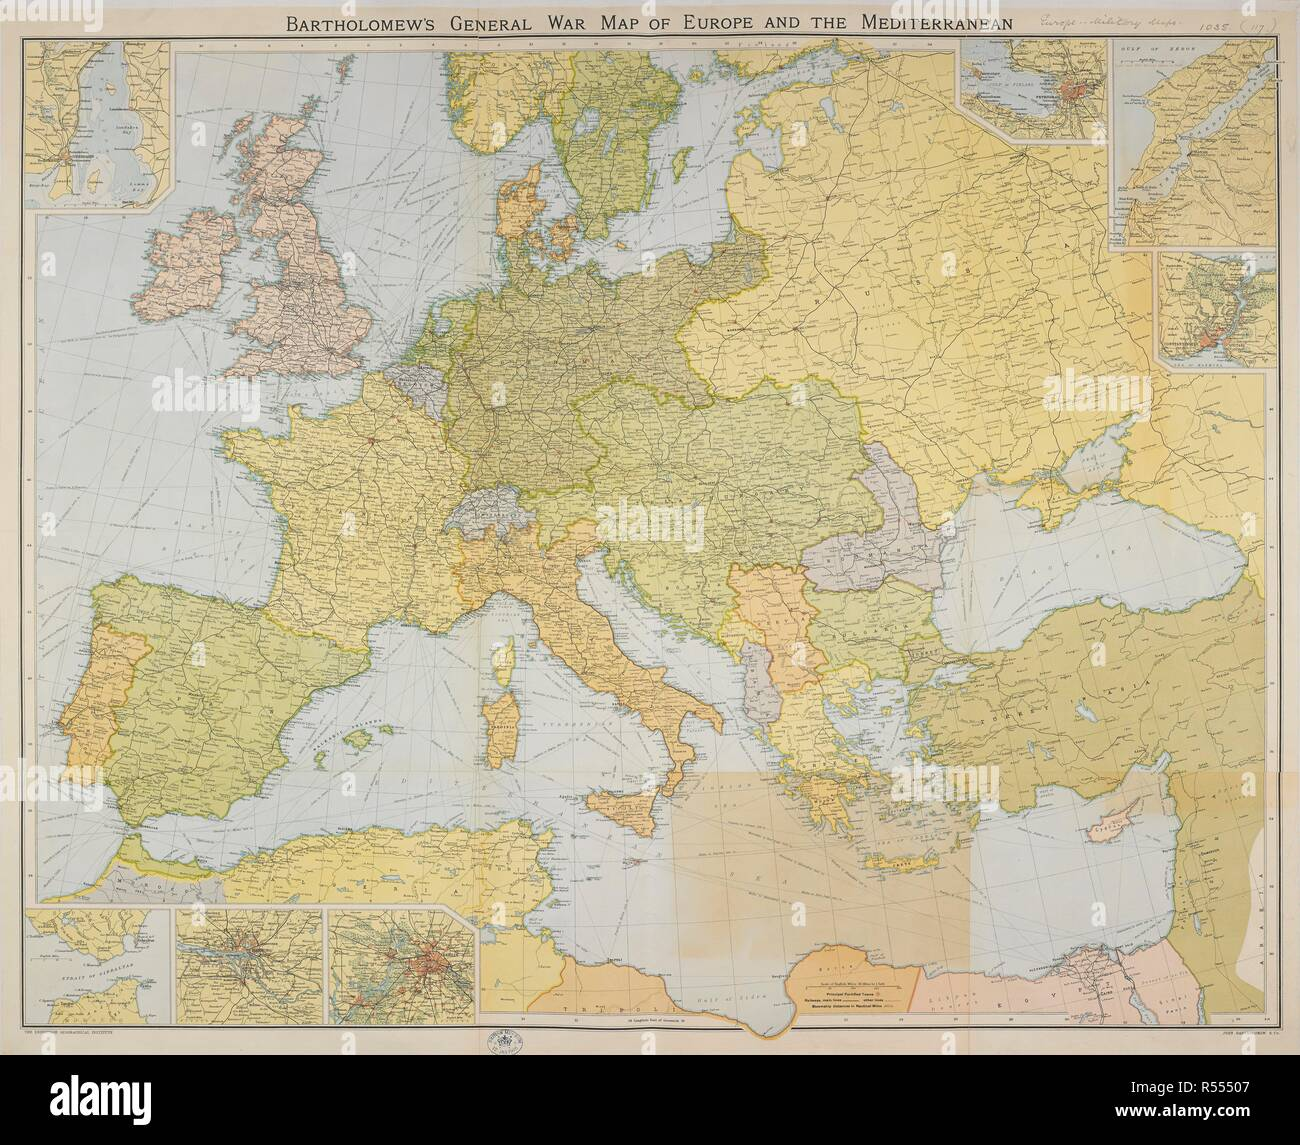 Bartholomew's General War Map of Europe and the ... on map of ancient middle east, map of european countries, map of great britain, map of native american tribes in 1700s, map of eruope, map of england, map of italy, map of austro-hungarian empire before 1910, map of continents, map of hungary before wwi, map of asia, map of australia, map of napoleon's empire, map of africa, map of germany, map from europe, map of austria hungary 1850, map of east prussia in 1937,